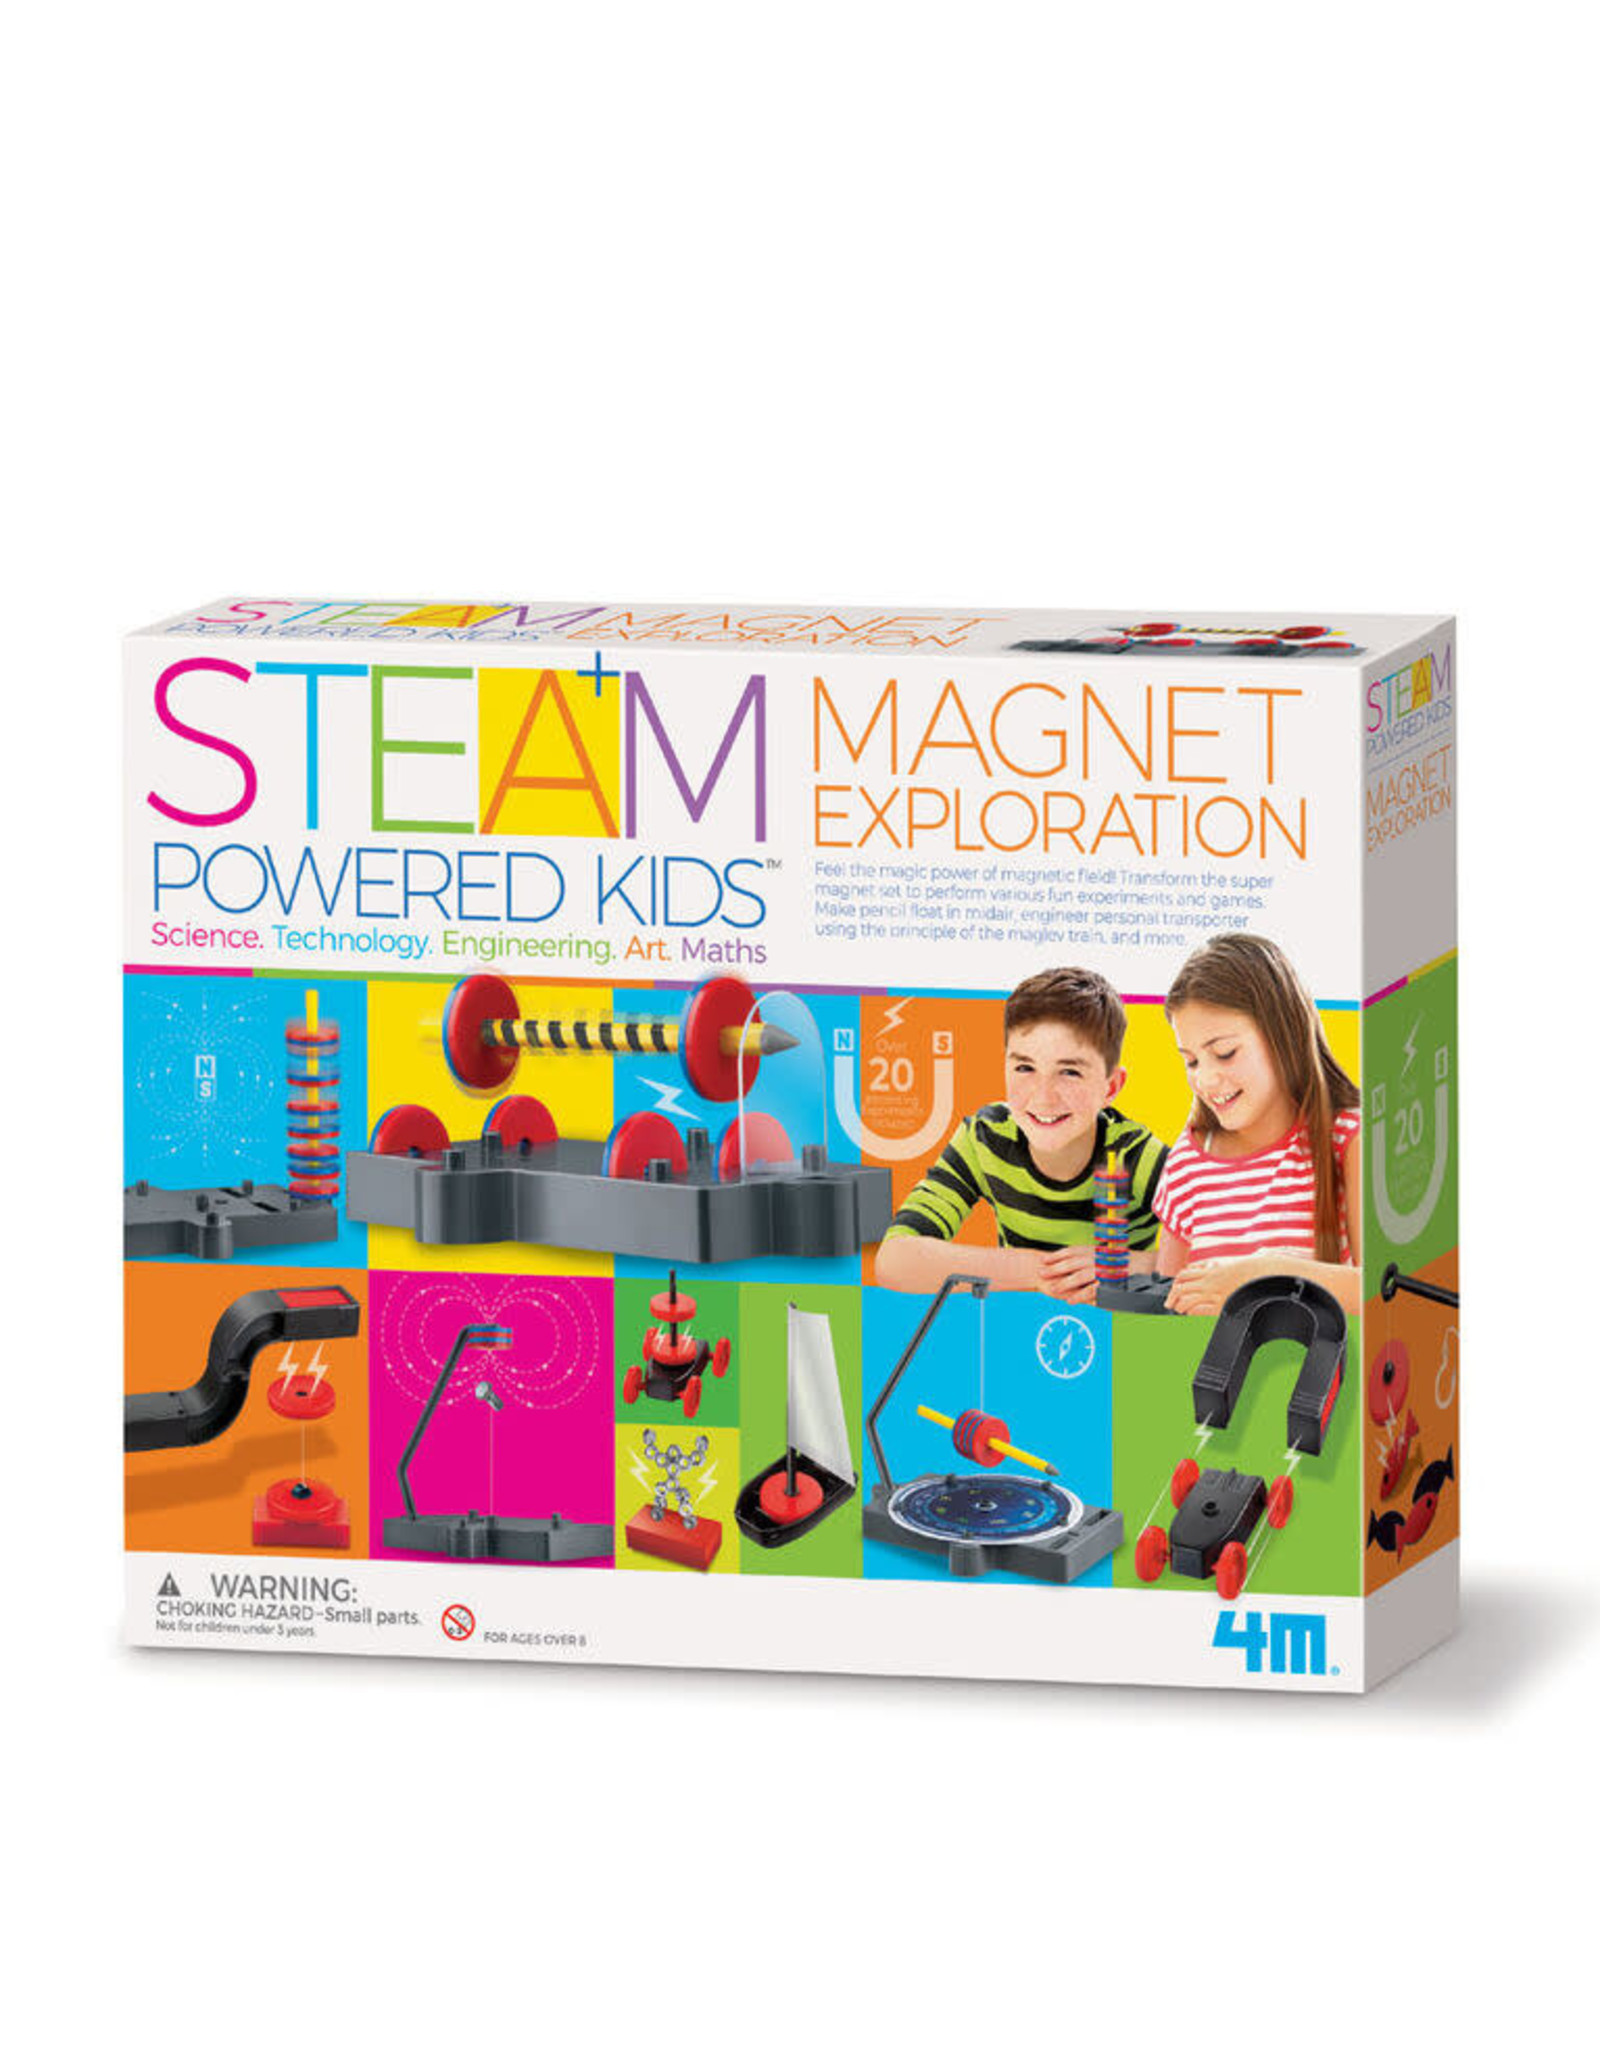 4M Magnet Exploration Science - Steam Kids